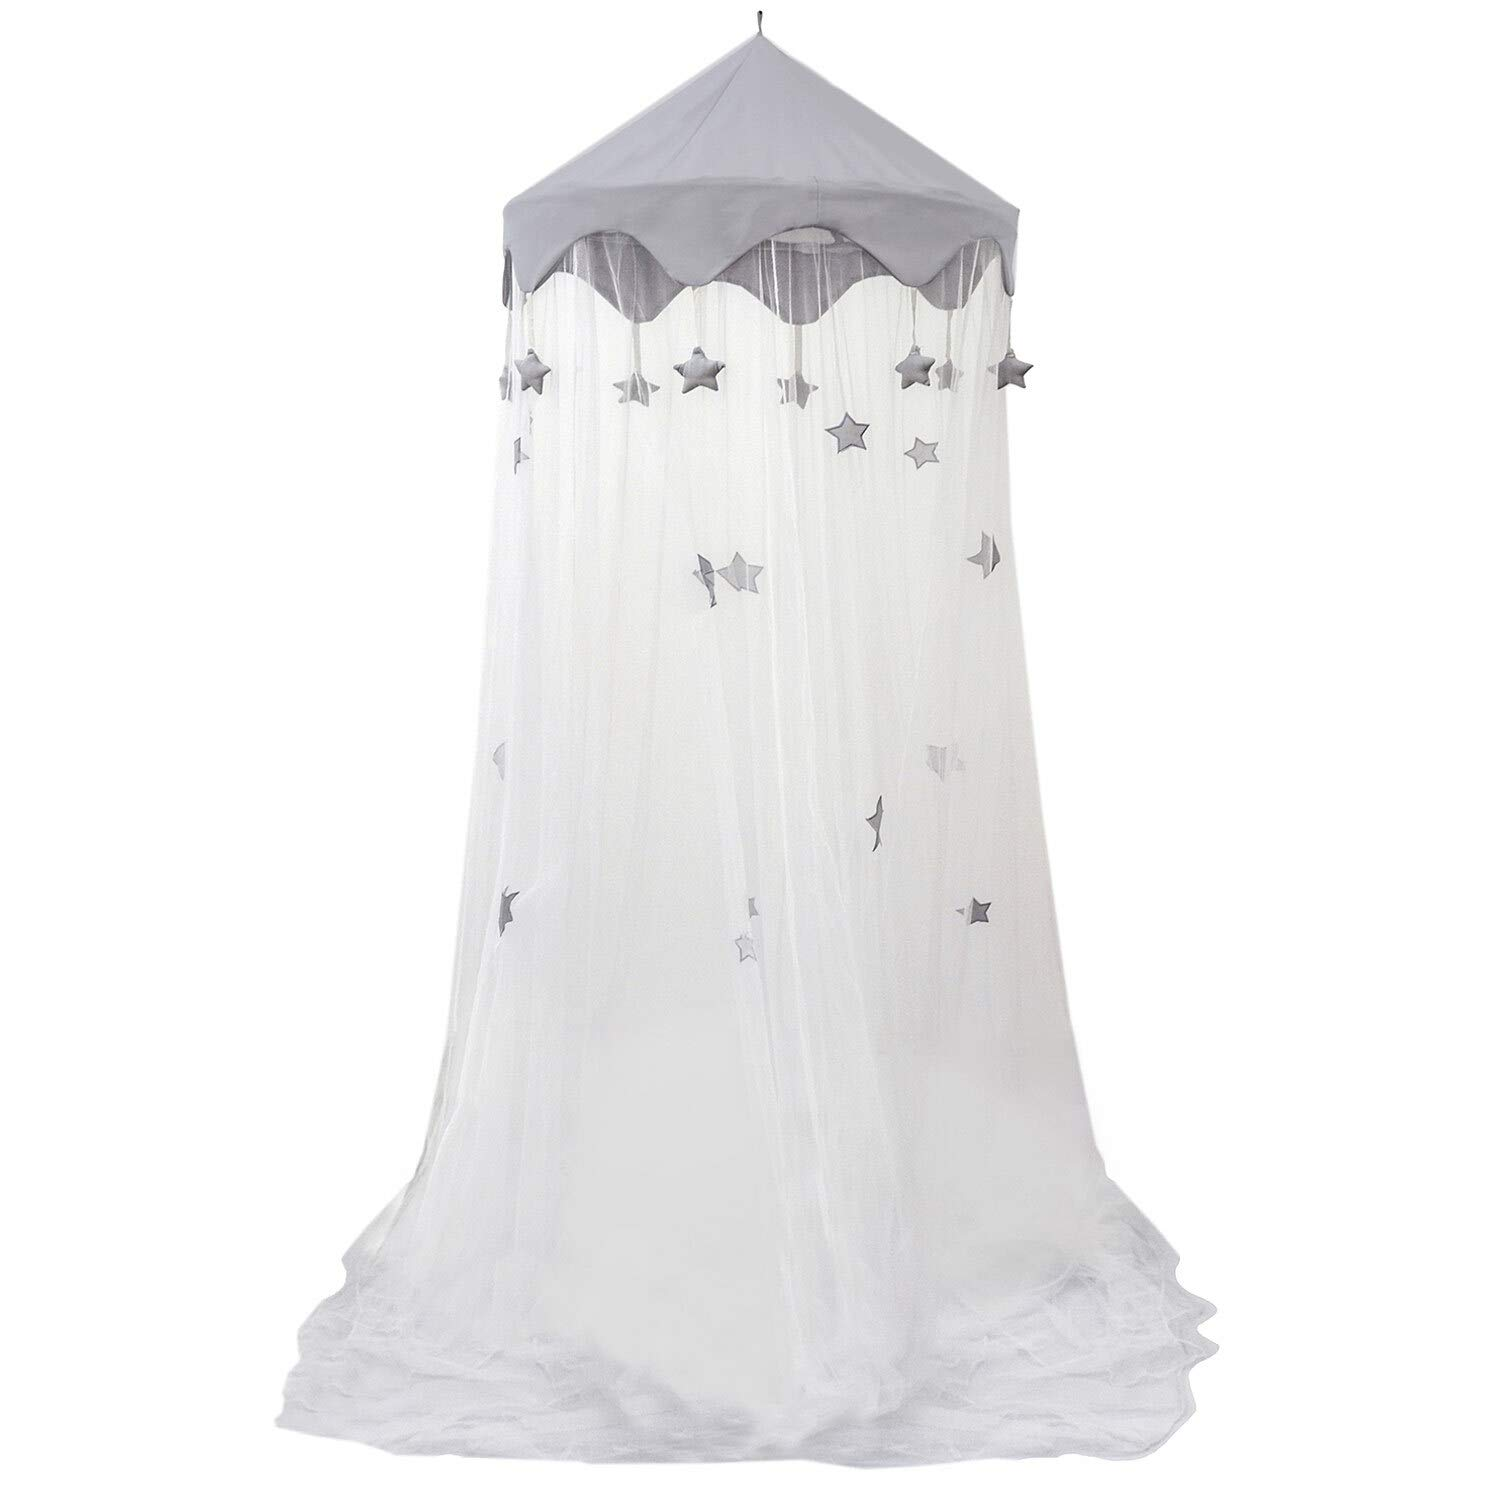 Hanging Pop Up Bed Canopy Mosquito Net with Stars for Kids Baby Adults